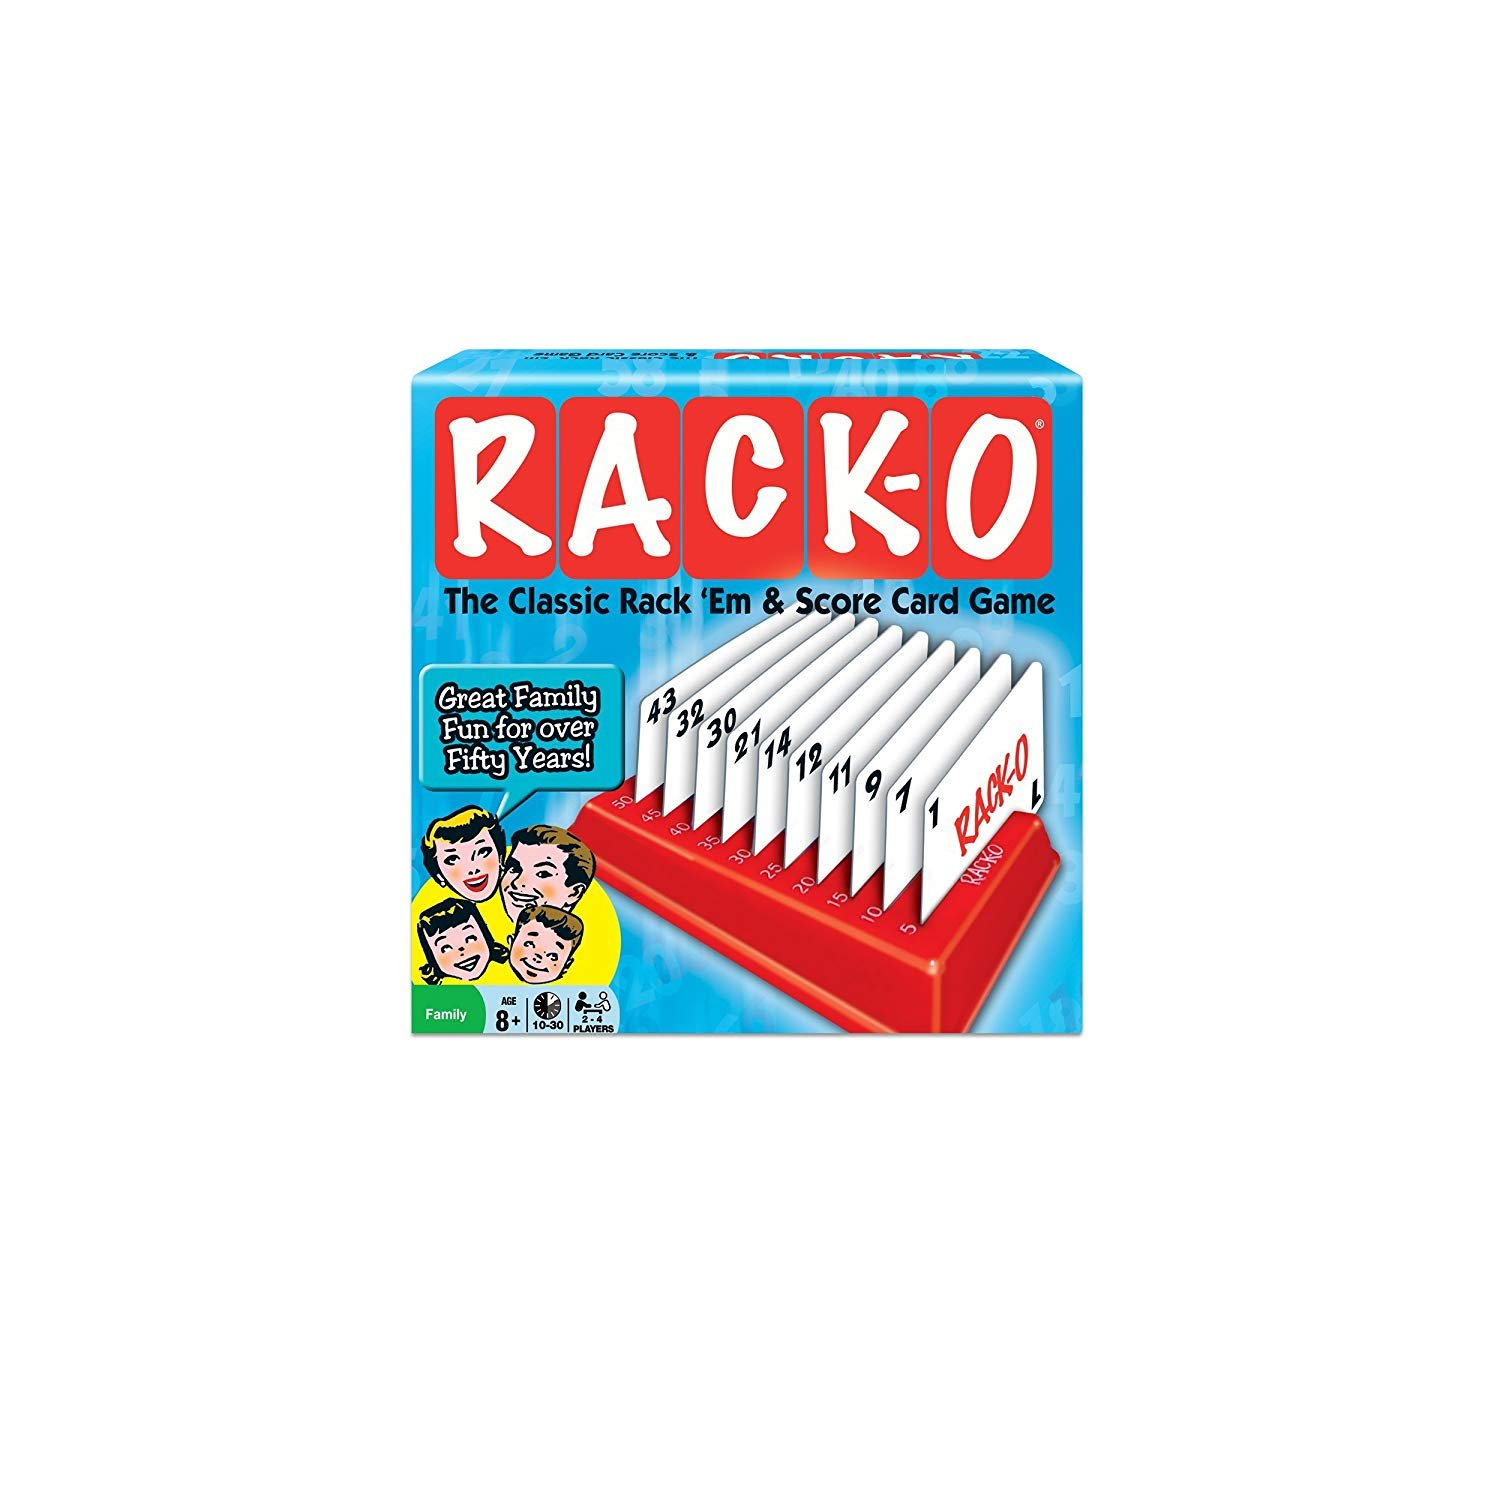 RACK-O Deluxe pack Retro package Card Game